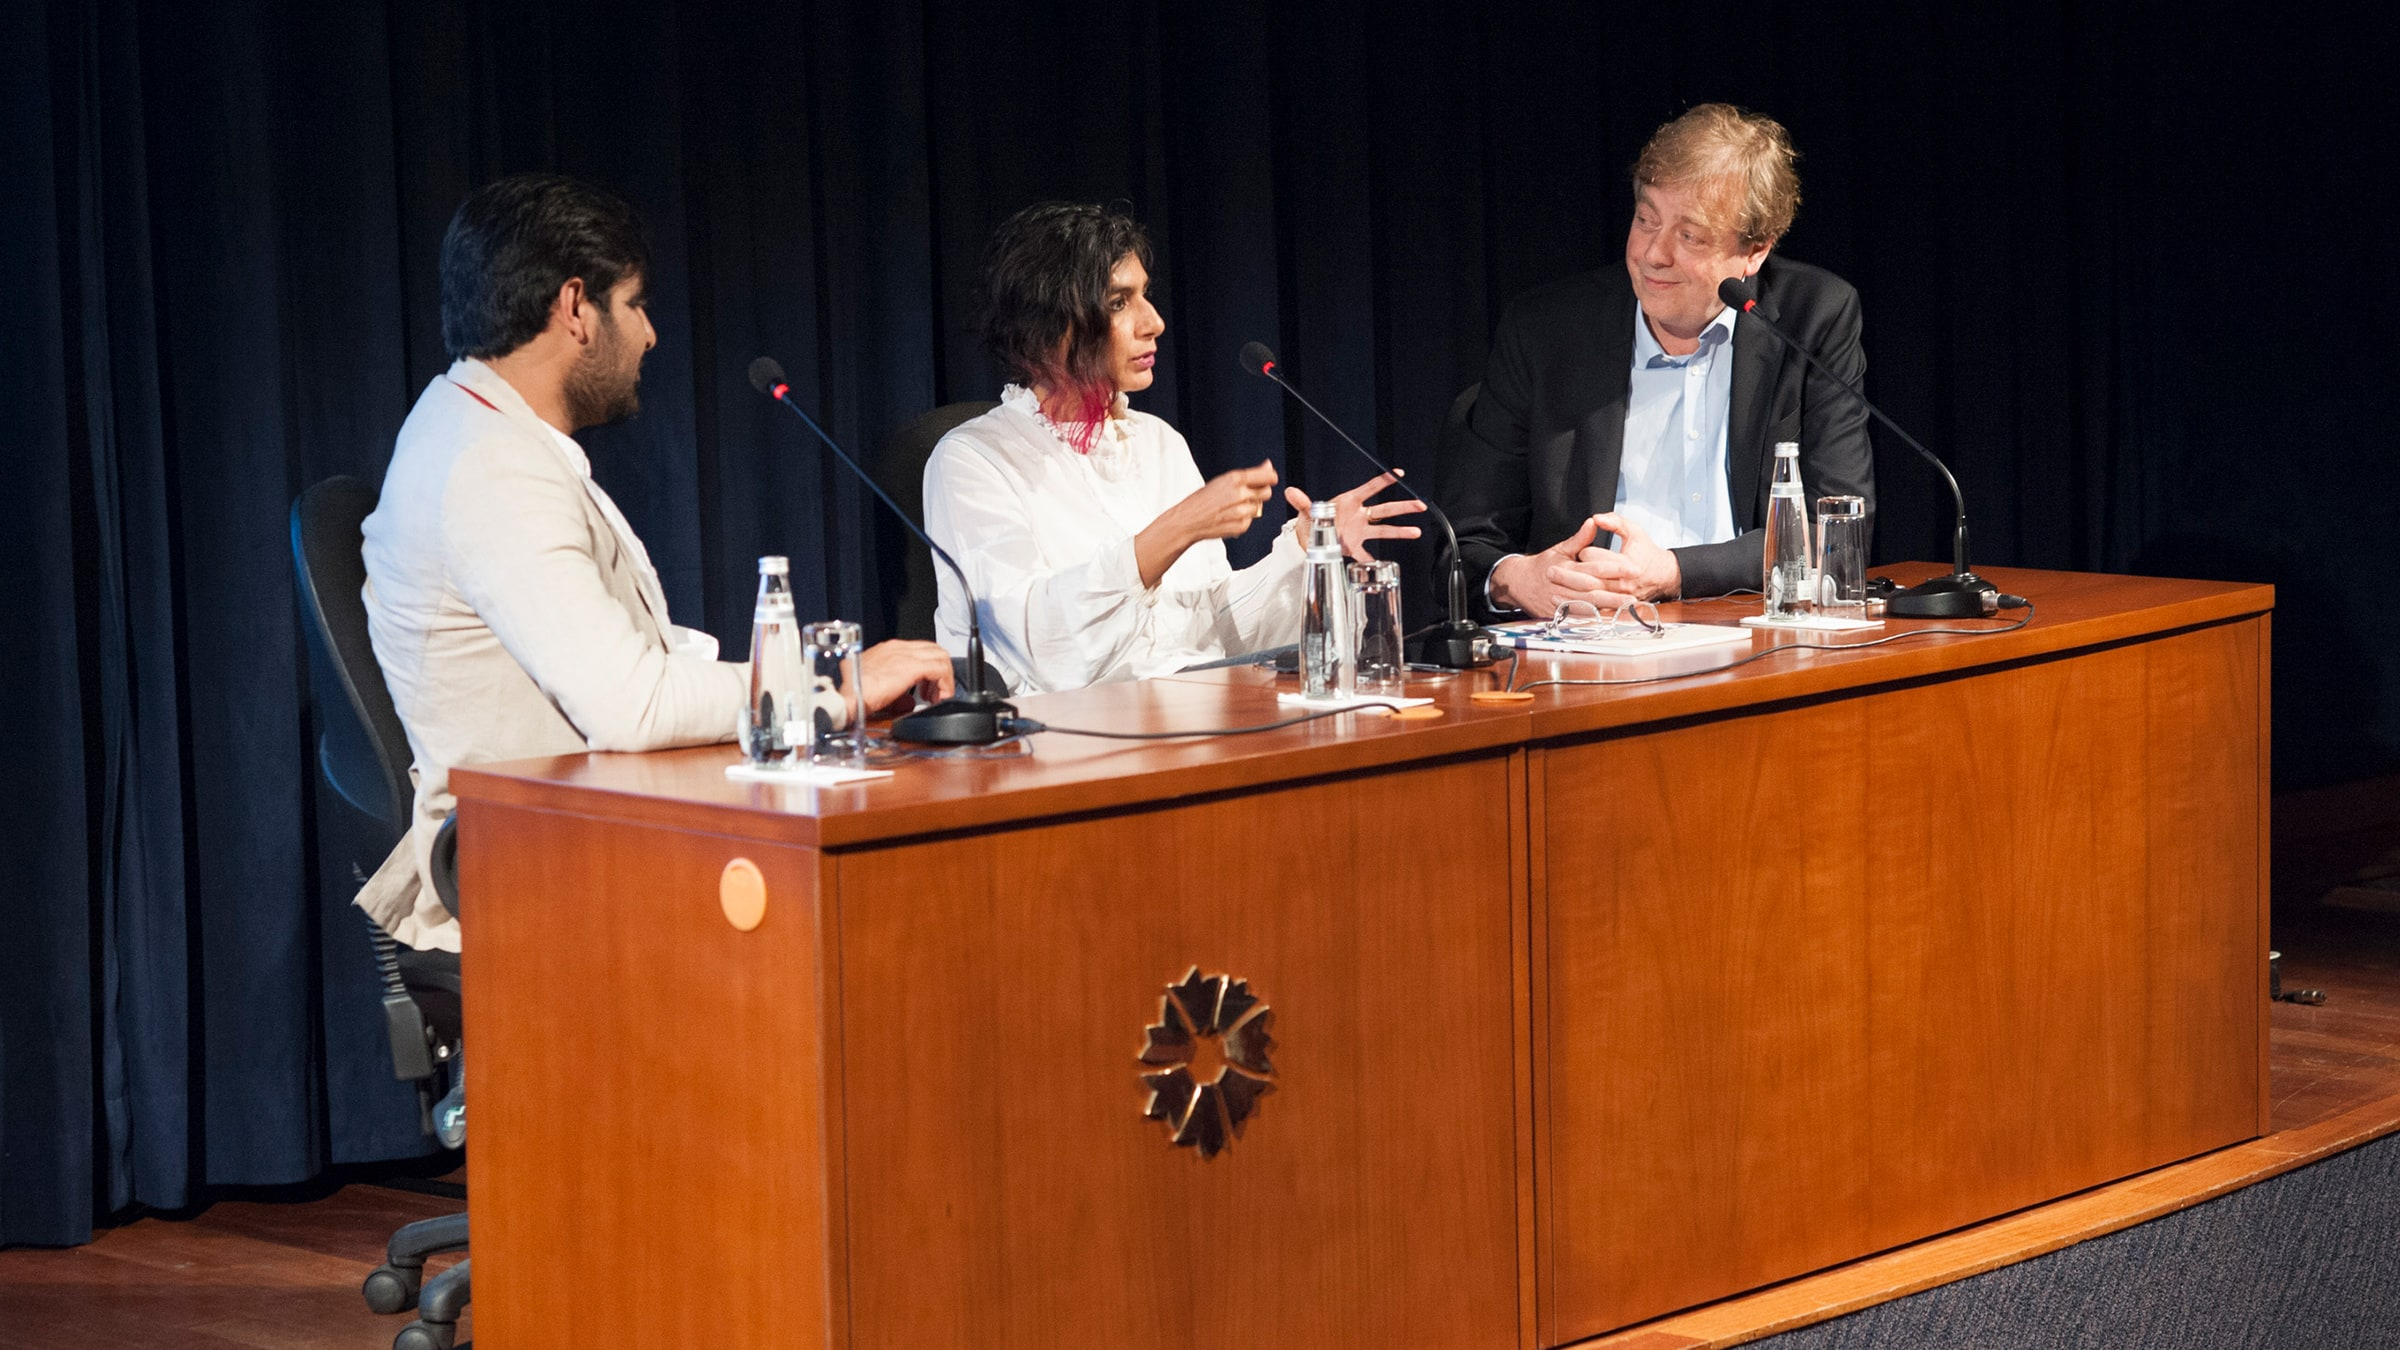 Waqas Khan, Monica Narula (RAQS Media Collective), Alistair Hicks